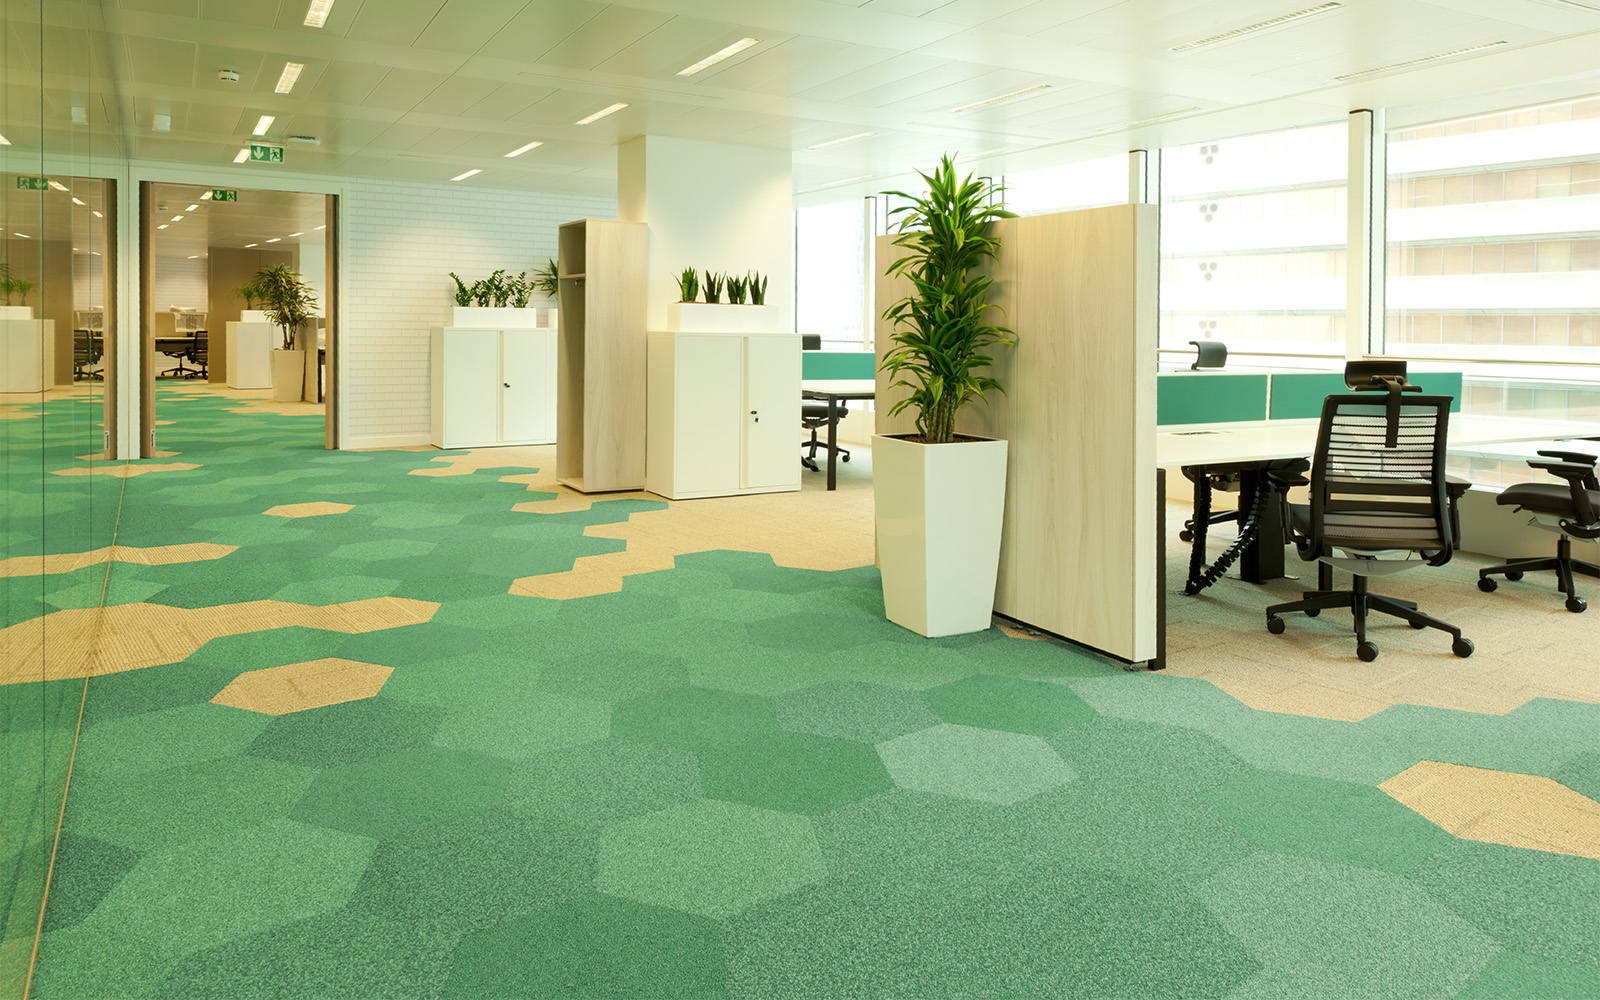 sustainable-carpet-tile-design-in-office